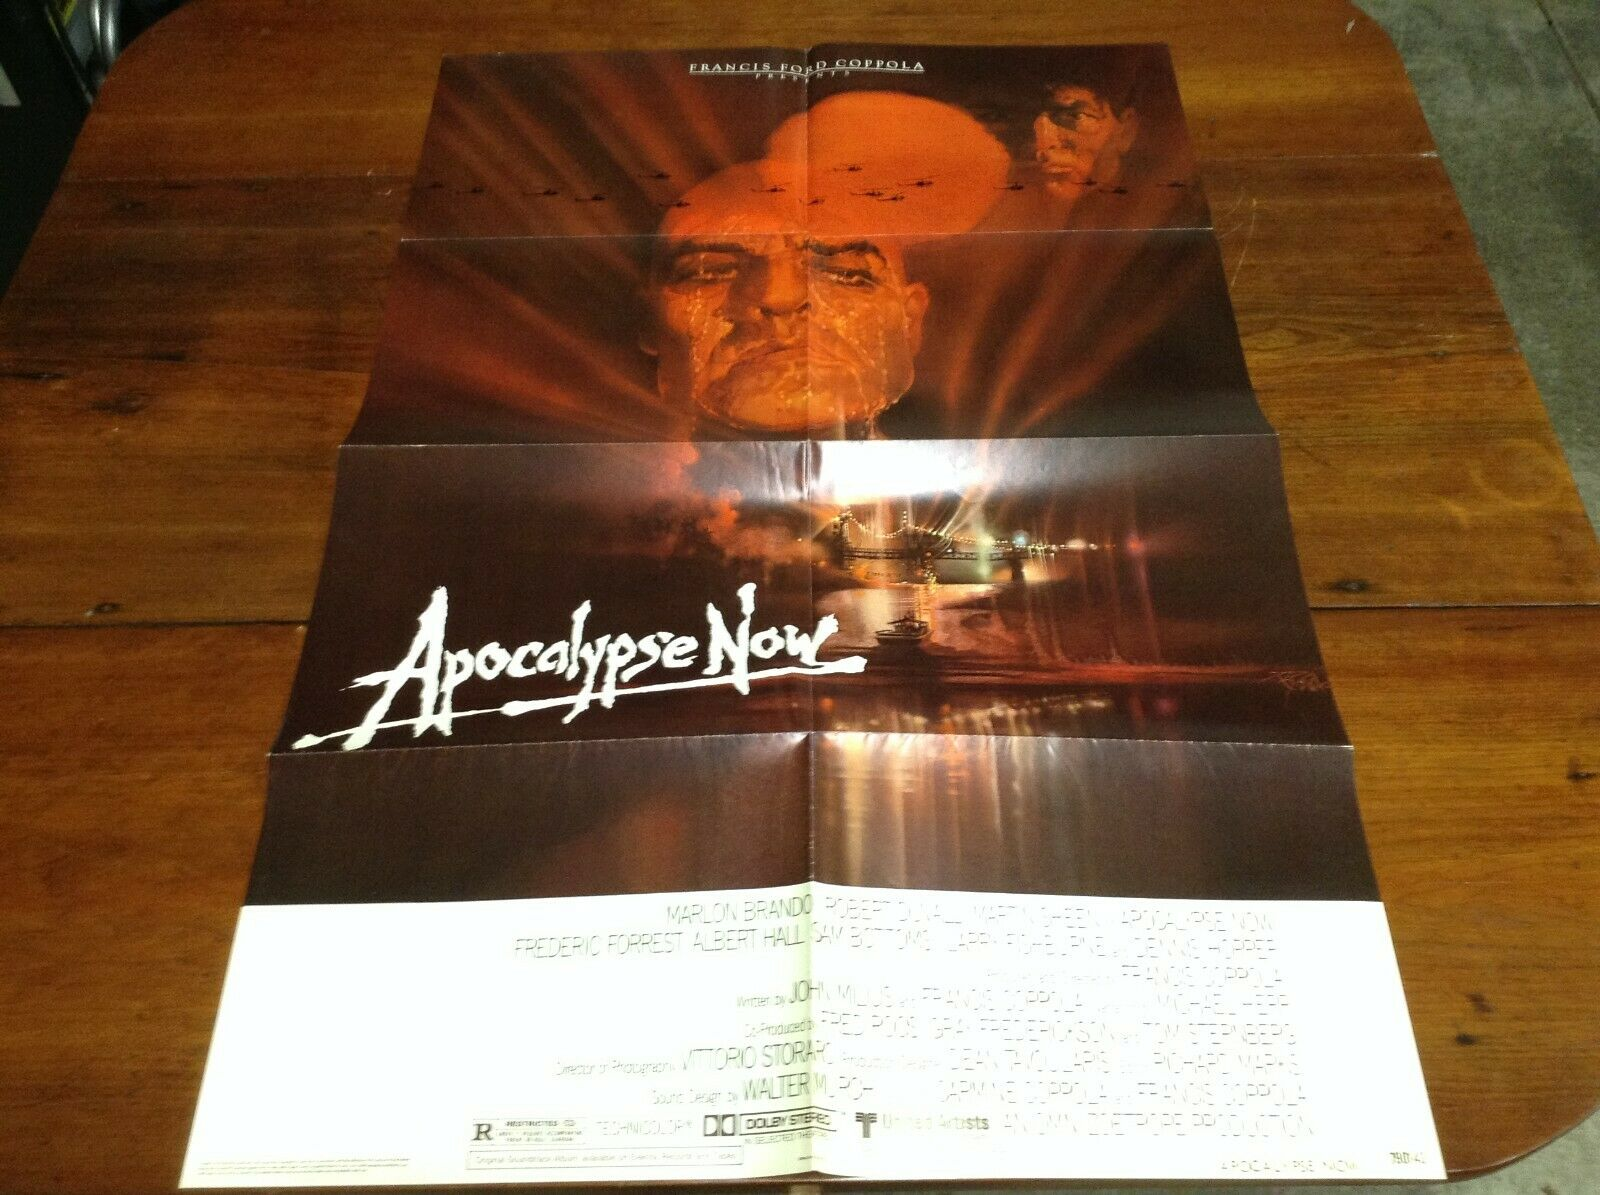 Apocalypse Now Original 1 Sheet Movie Poster 27 X 41 Folded - $100.00